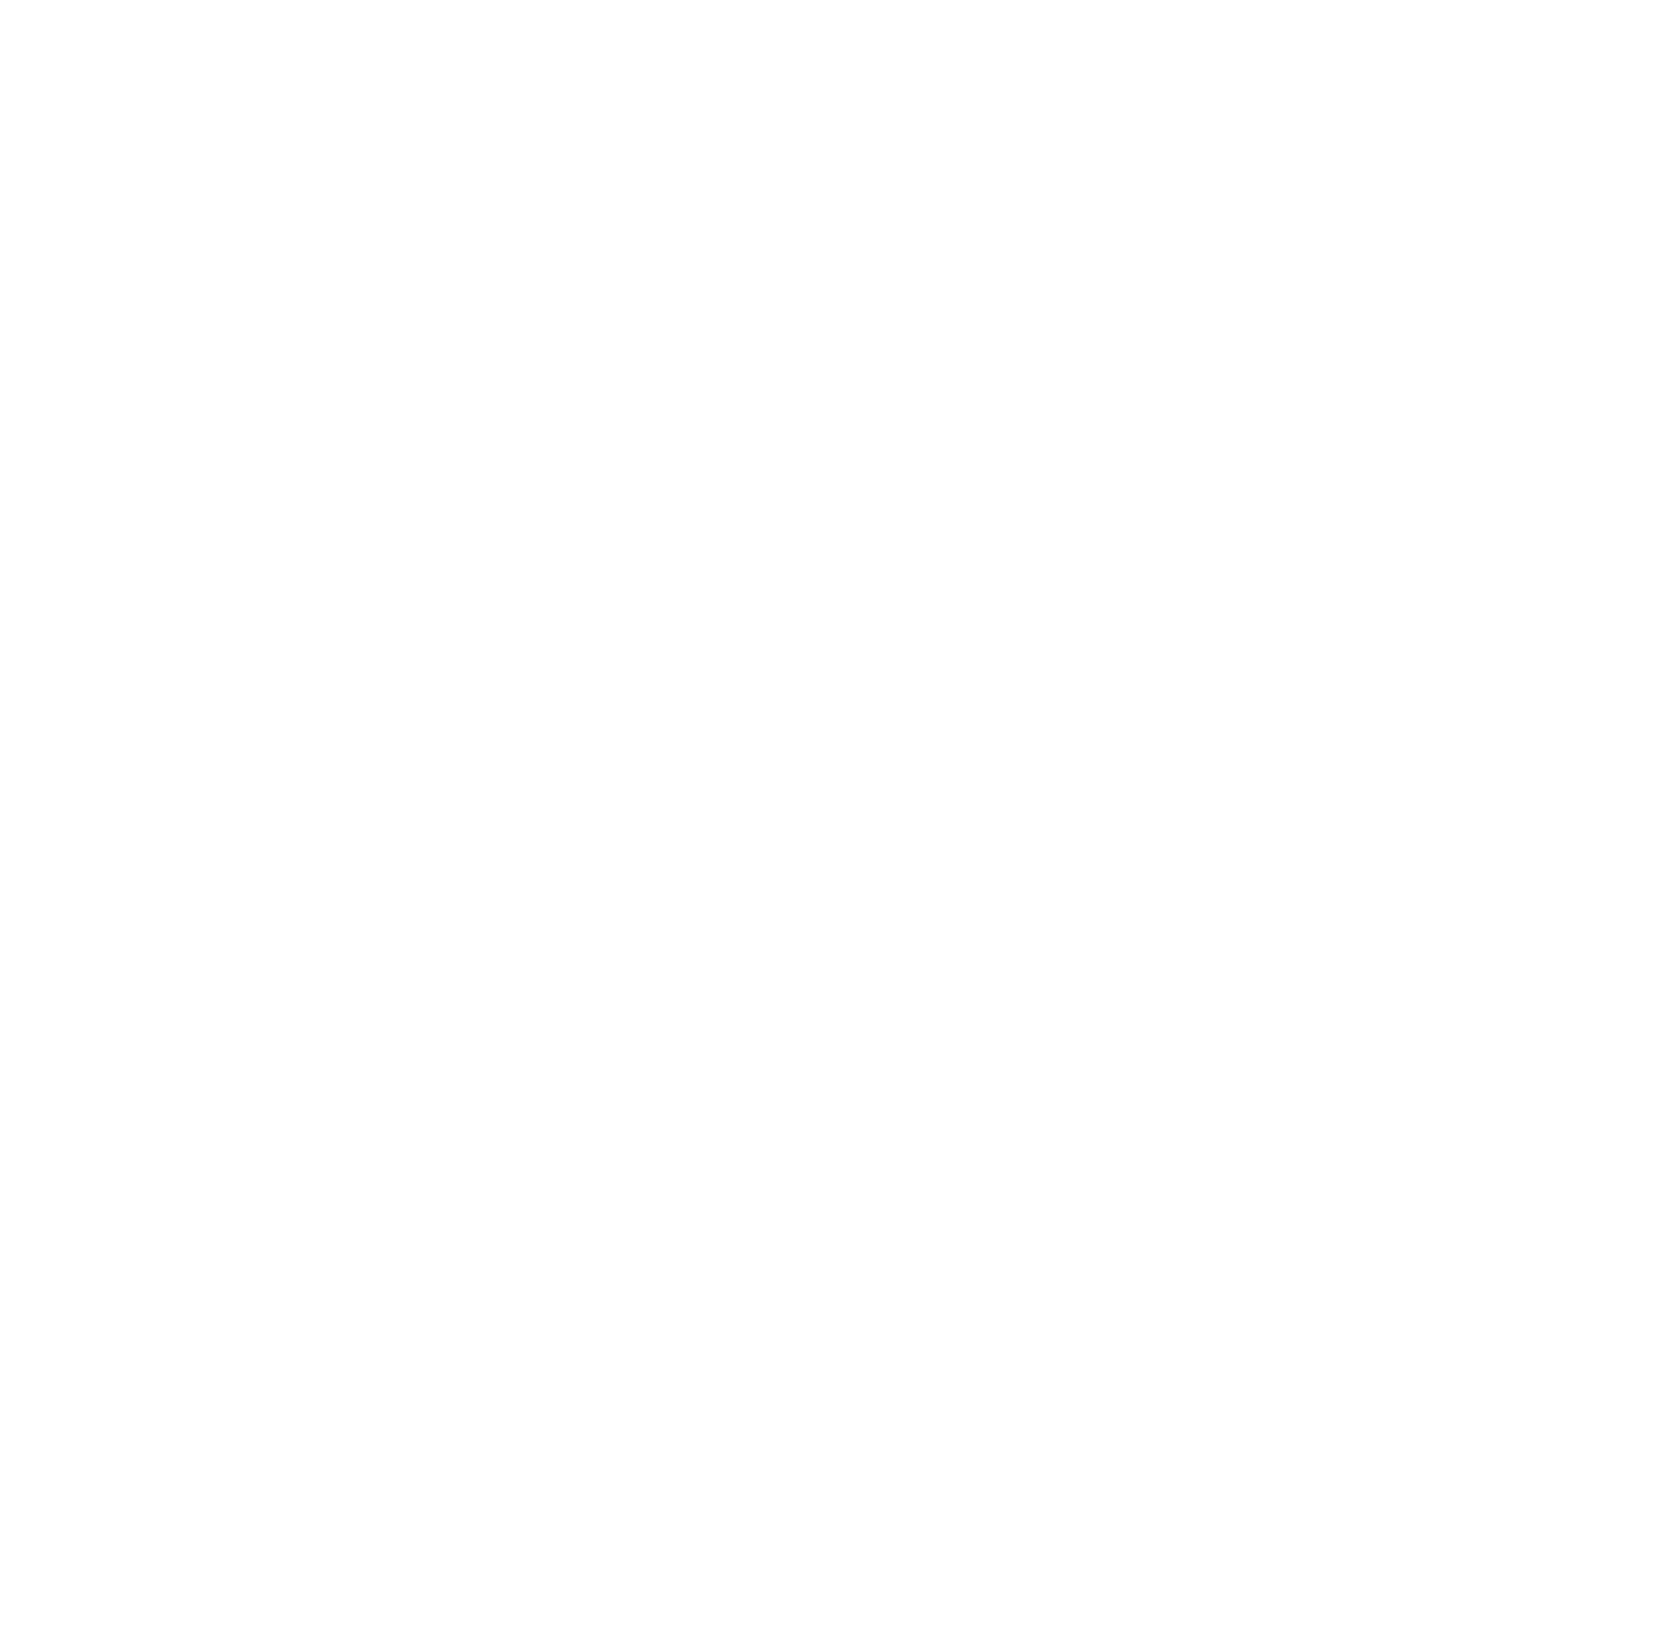 Witch symbol png. Image of space god